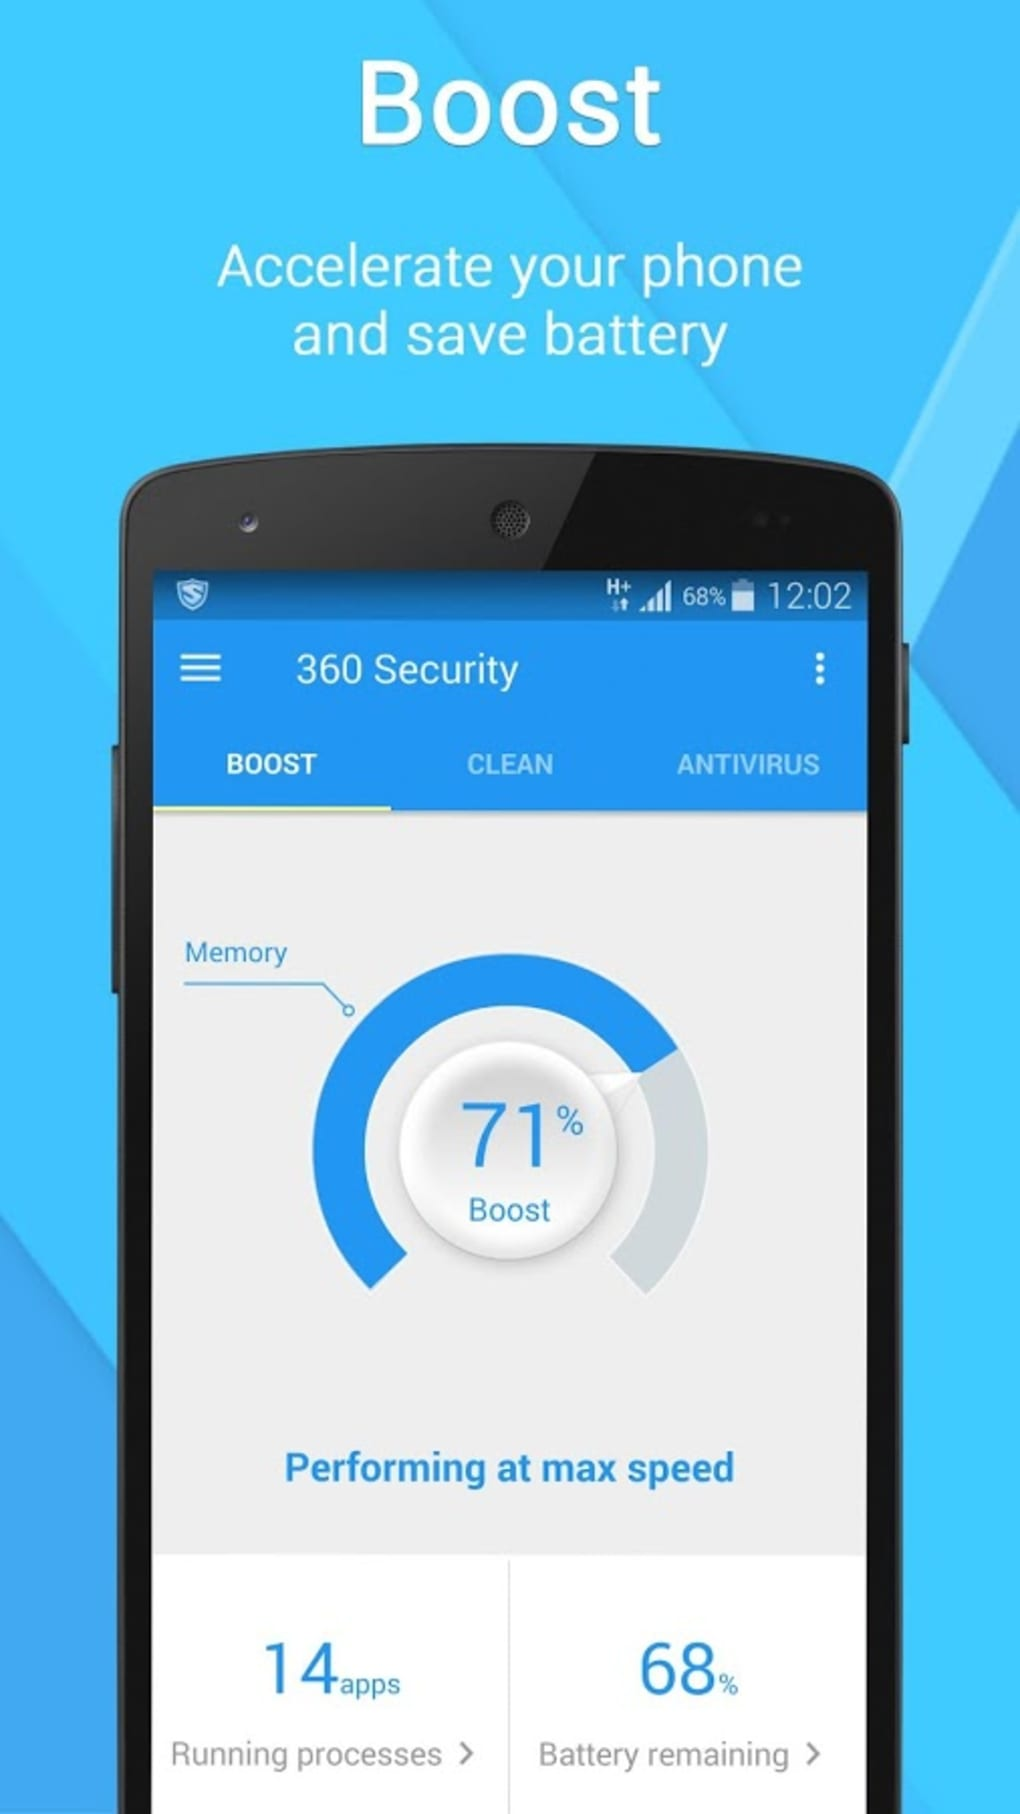 descarga antivirus 360 security gratis